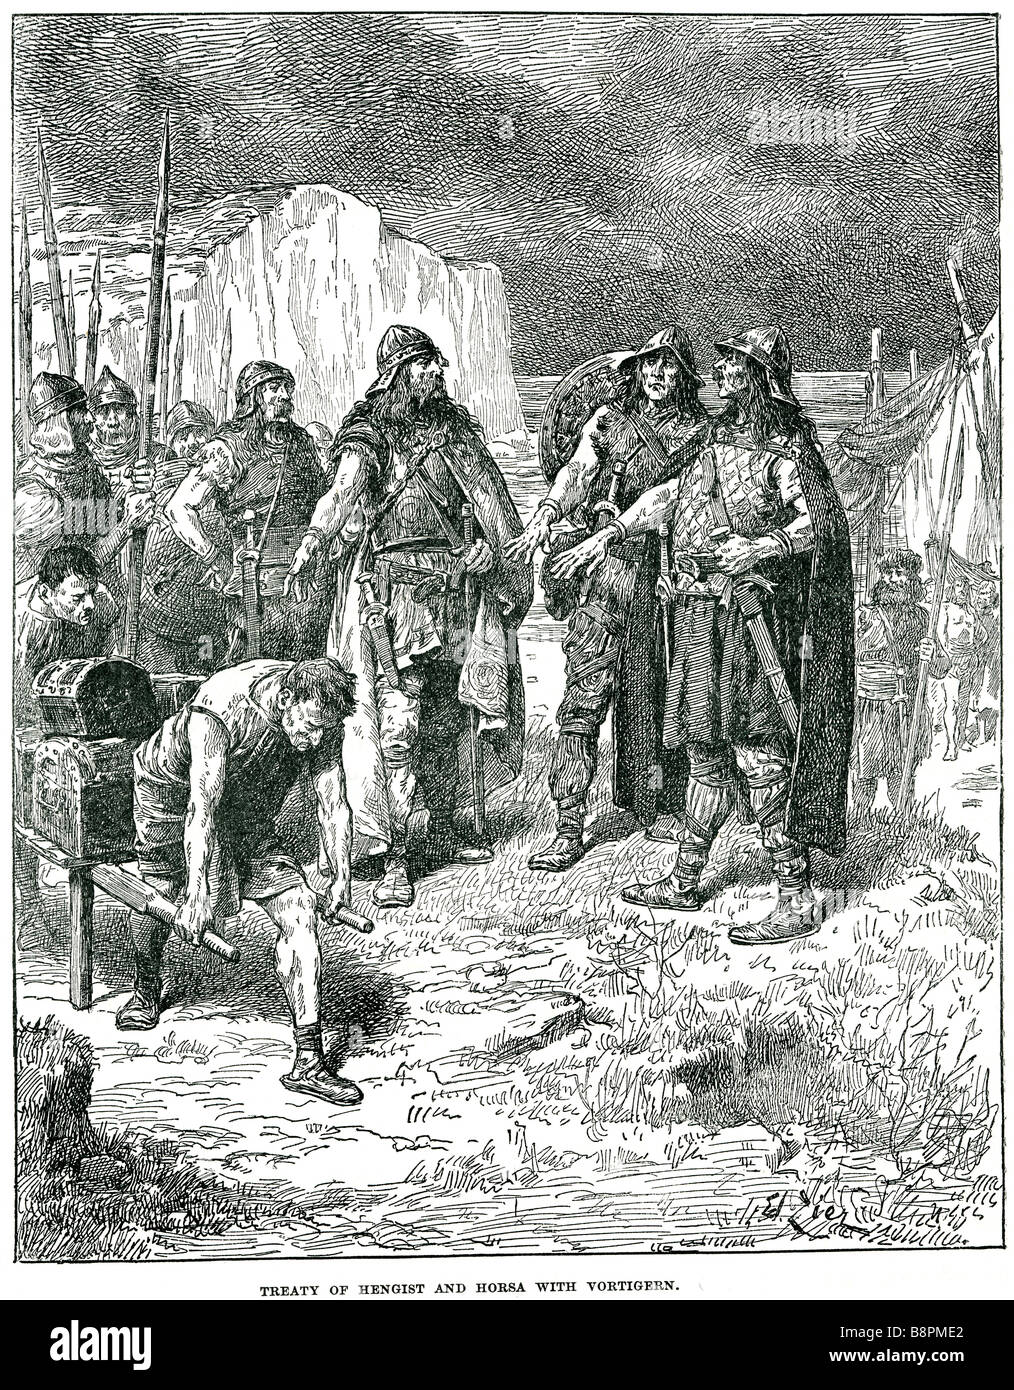 treaty of hengist and horsa with vortigern The Kingdom of Kent was a kingdom of Jutes in southeast England and was - Stock Image